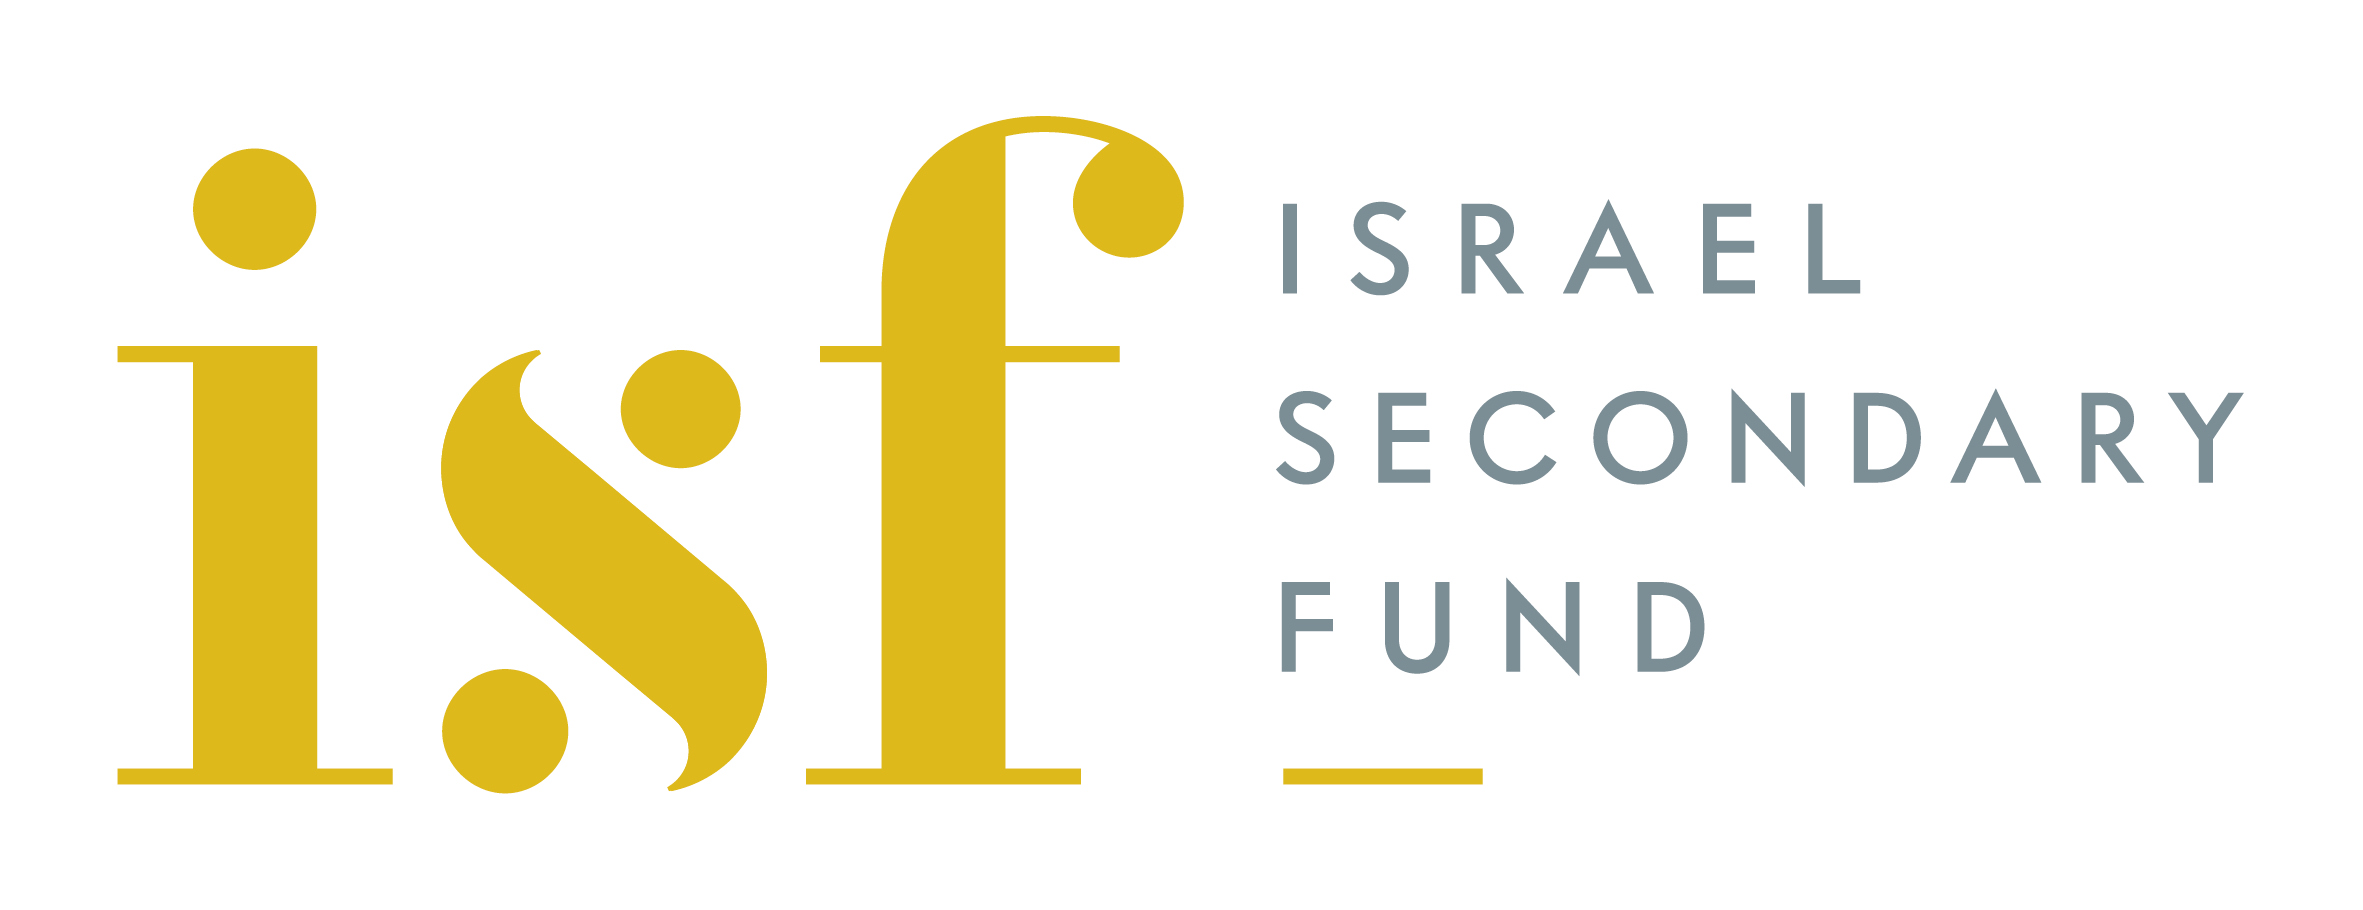 Israel Secondary Fund